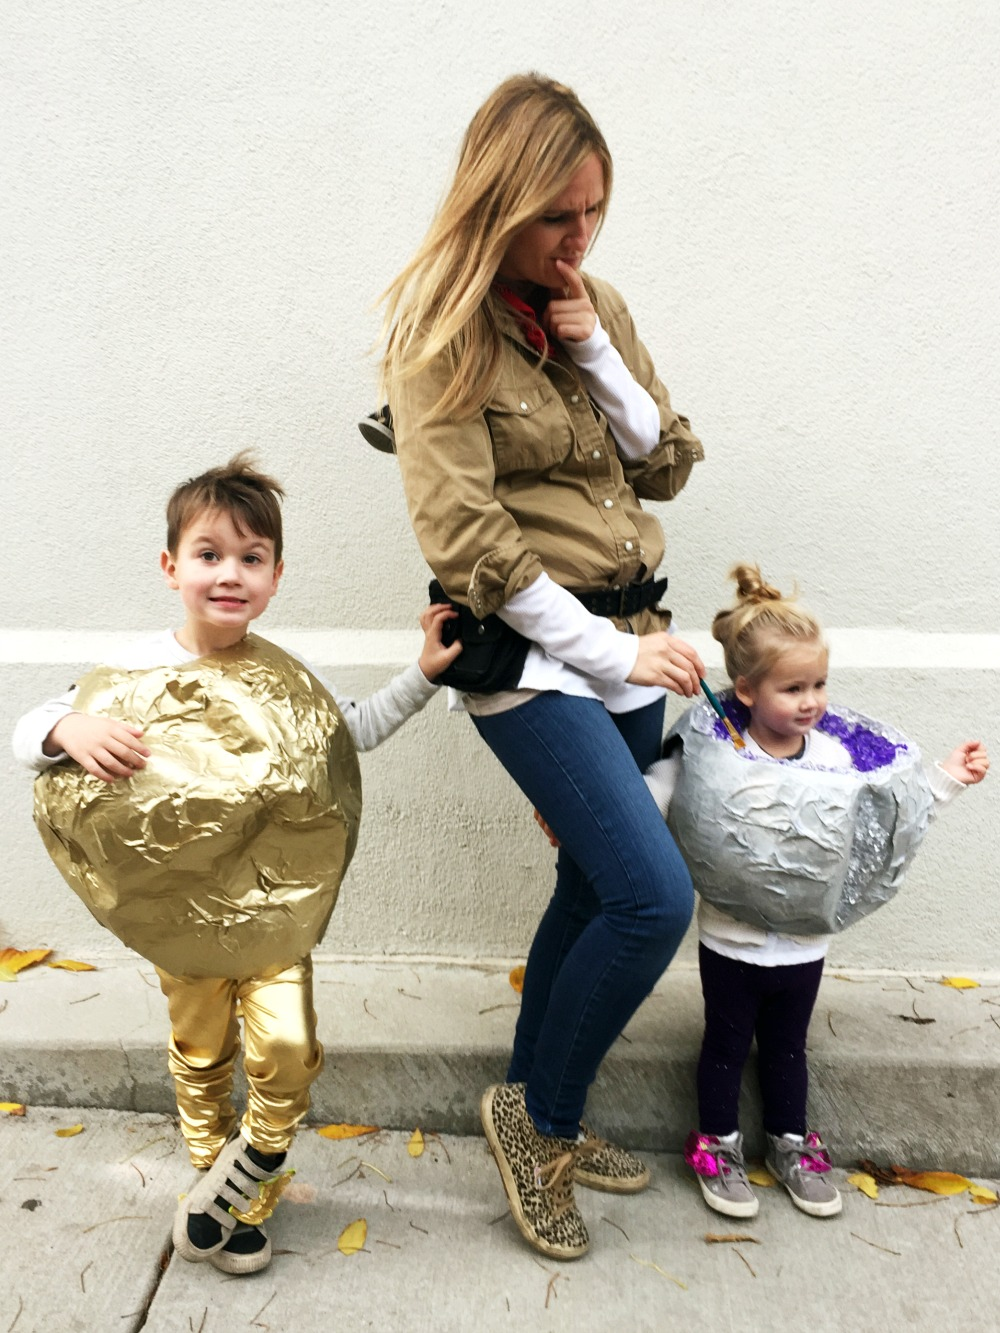 sc 1 st  Gilded & Golden Nugget Amethyst Geode DIY Halloween Costumes with Mommy